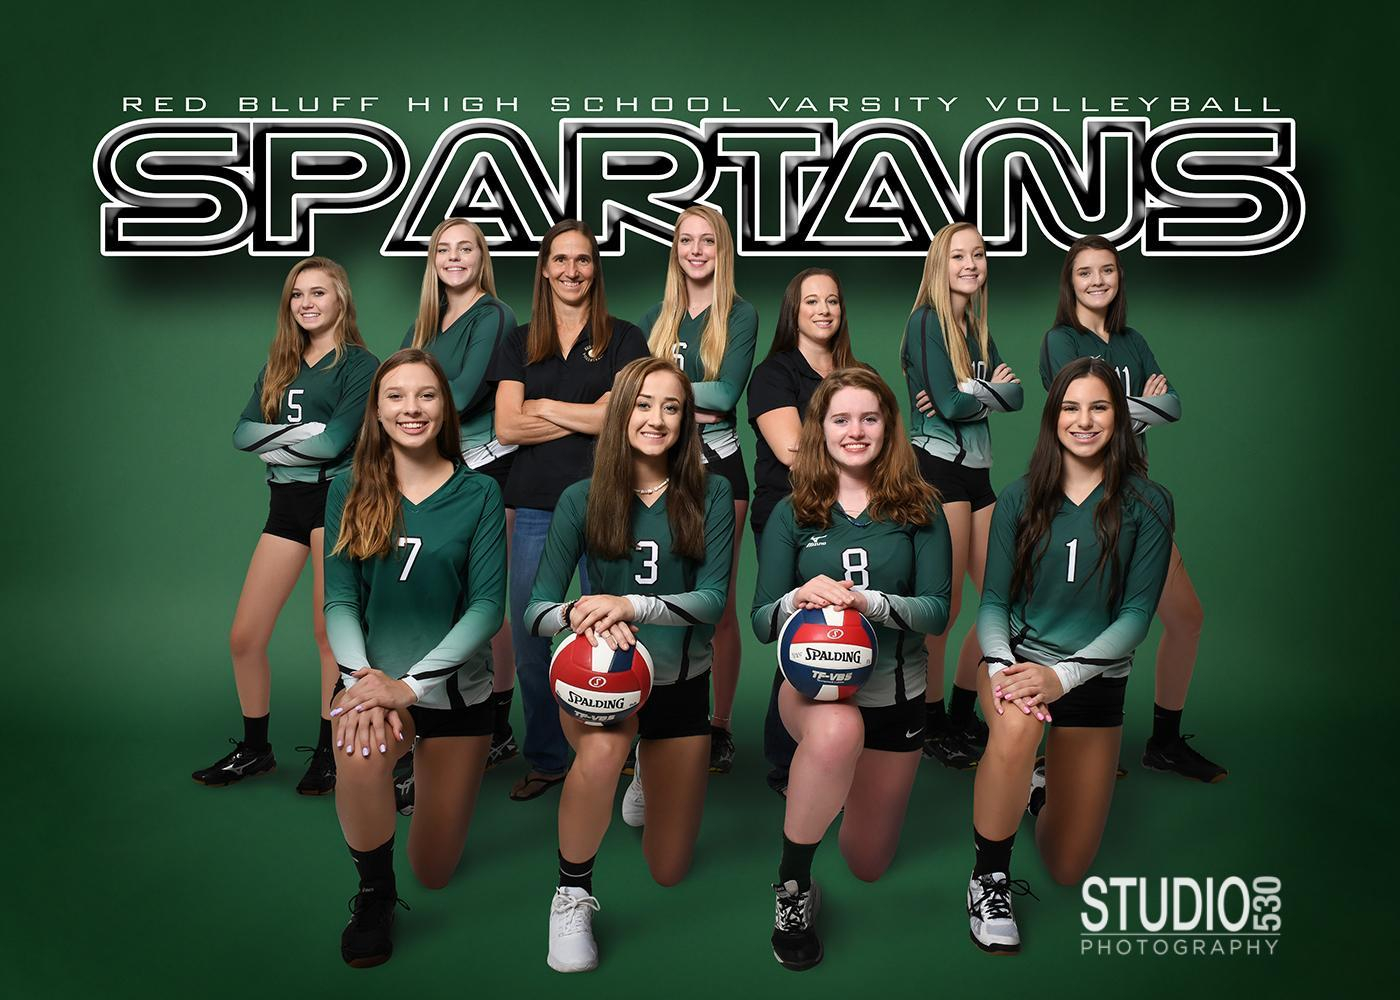 Red Bluff High School - Volleyball With Red Bluff High School Schedule